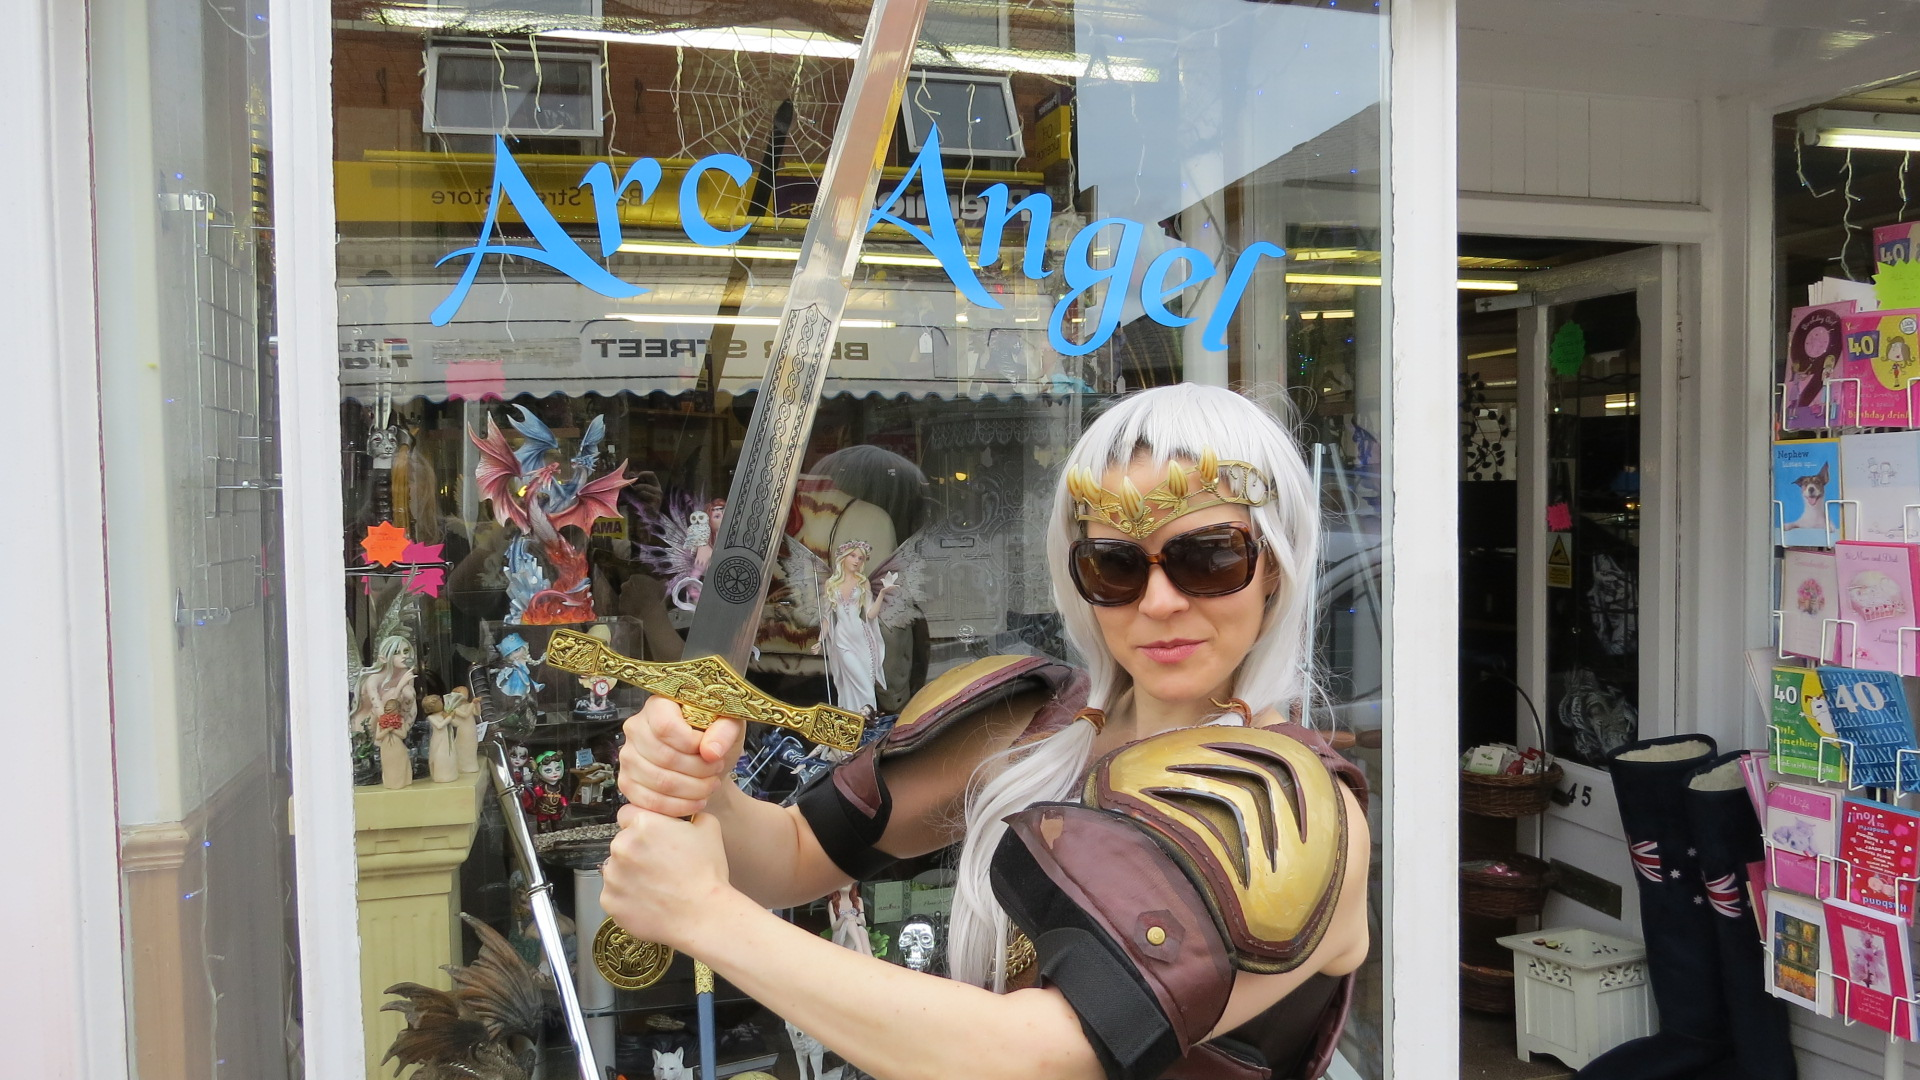 Elana arrives at dragon store Arc Angel in full costume